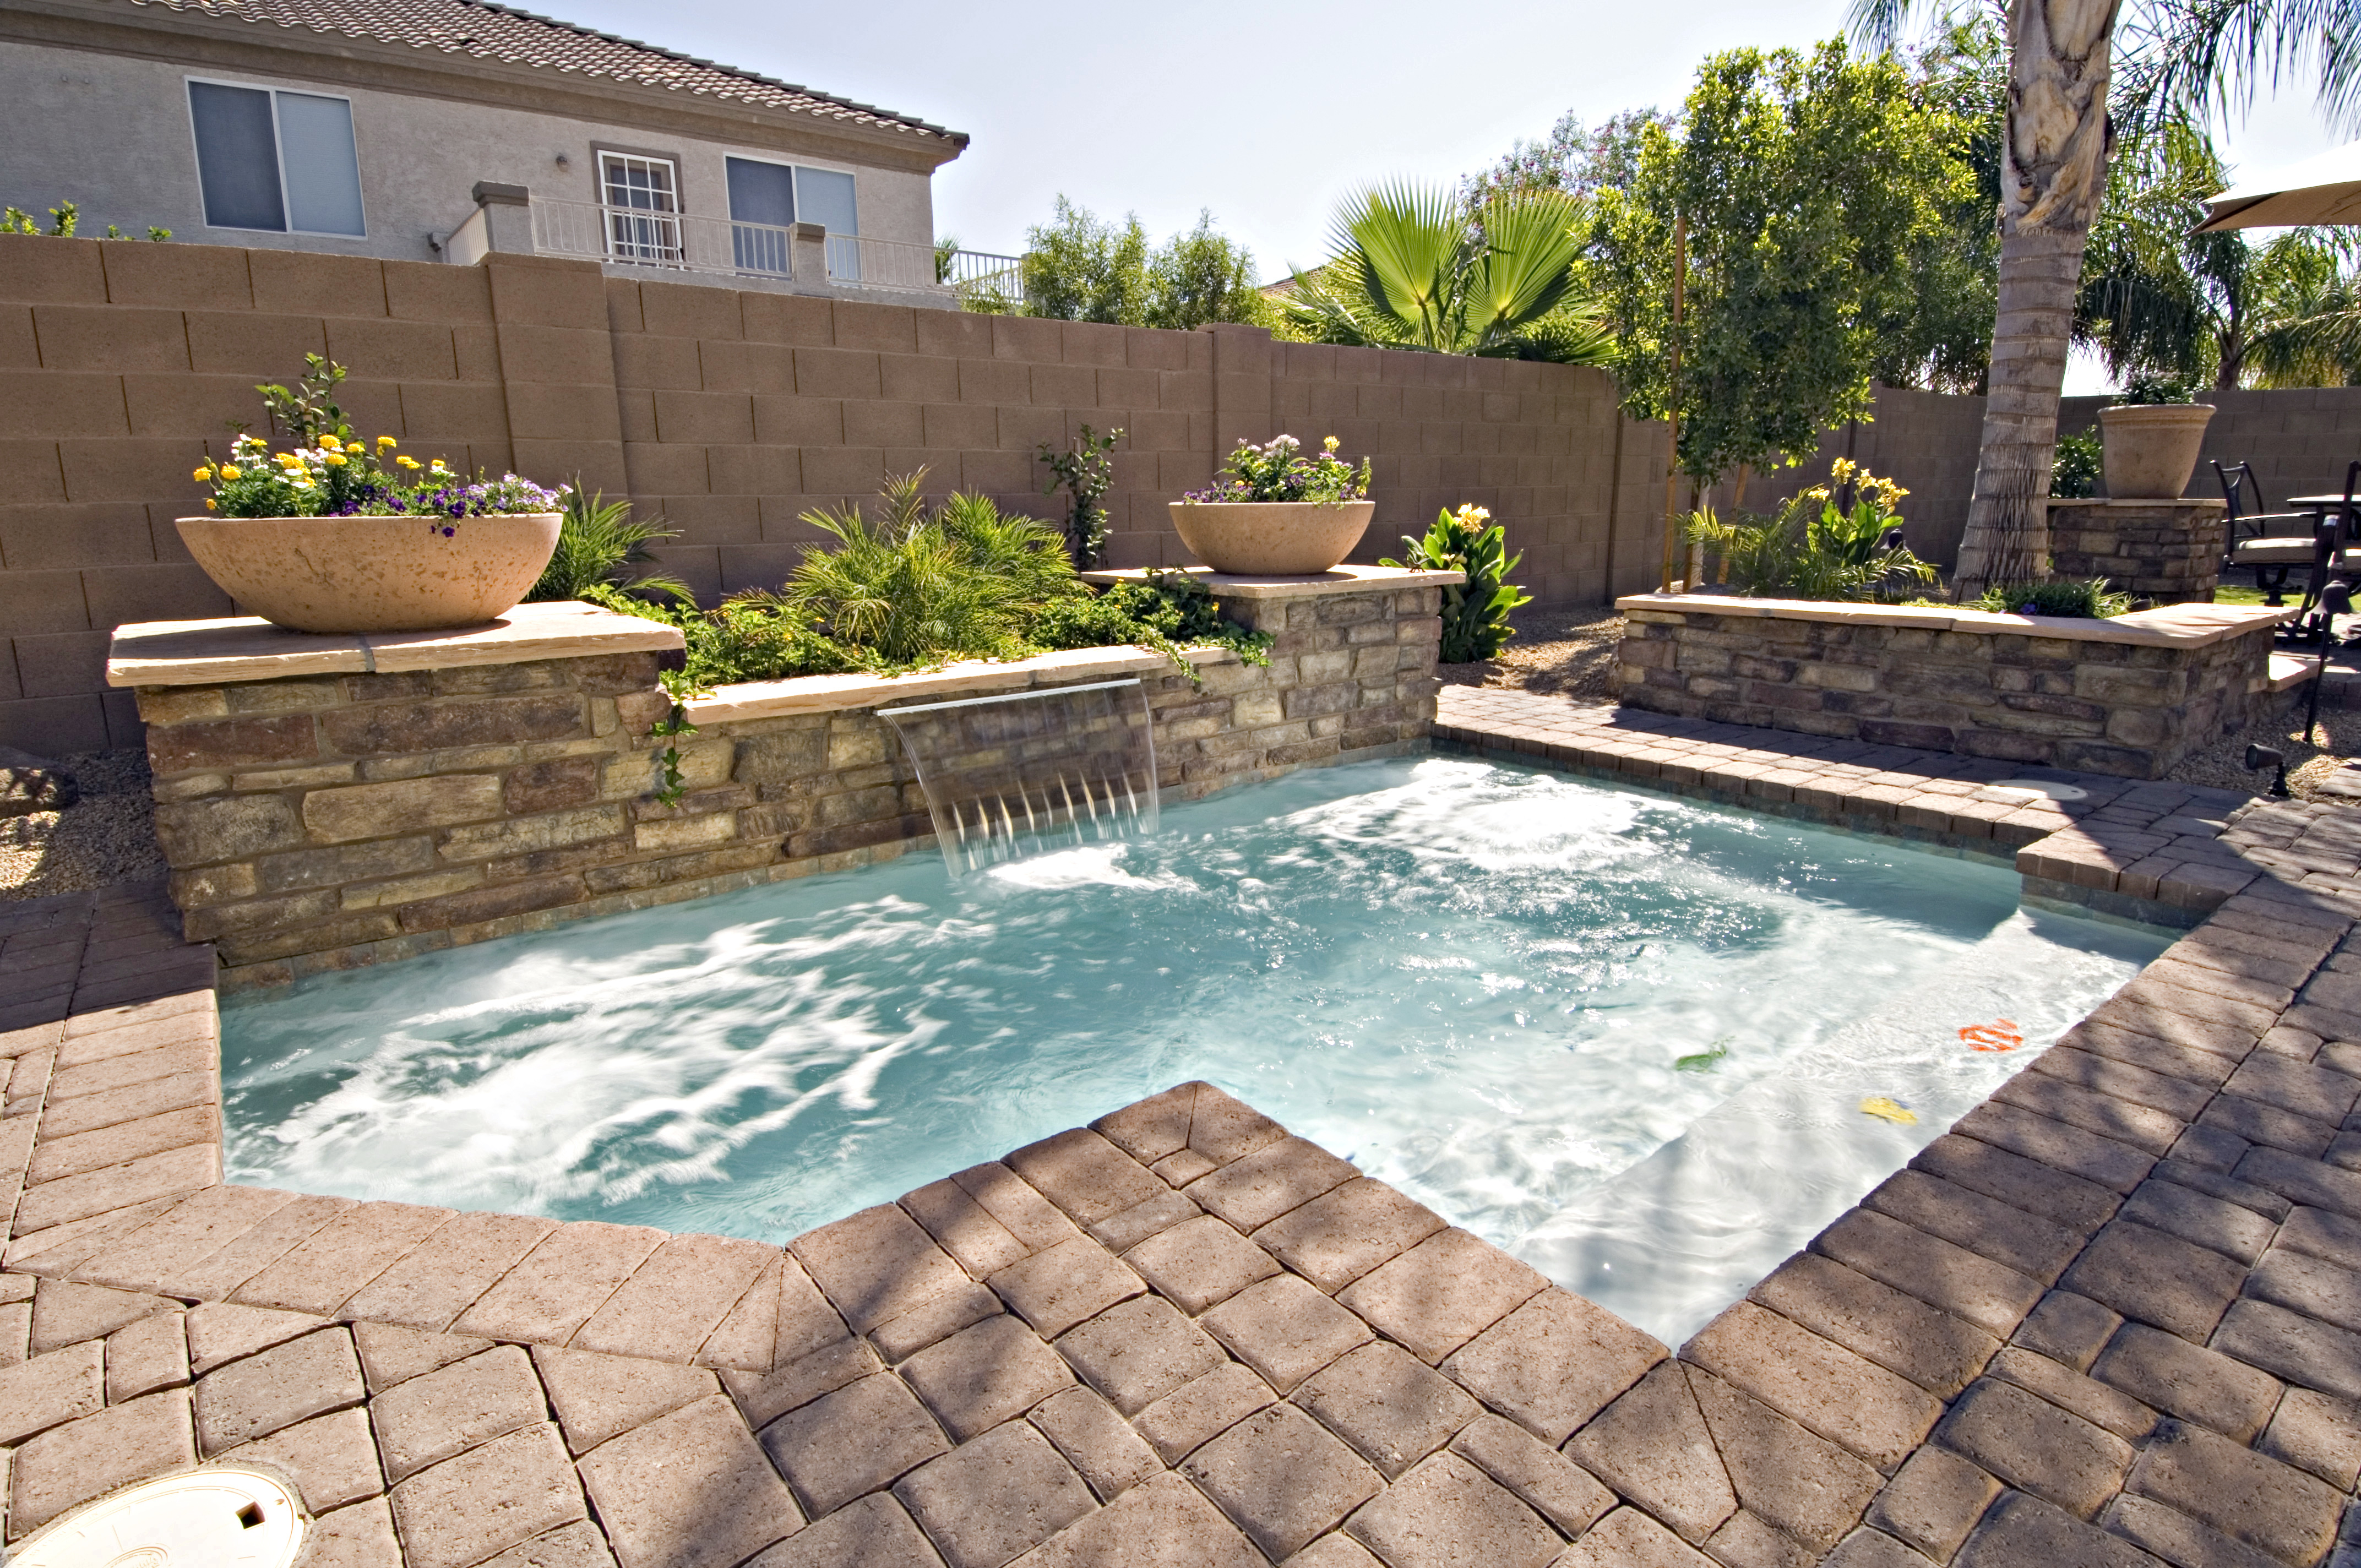 Awesome Design Outdoor Jacuzzi Ideas Rectangular Pool Tierra Este for 15 Awesome Tricks of How to Upgrade Pool Ideas For Small Backyards